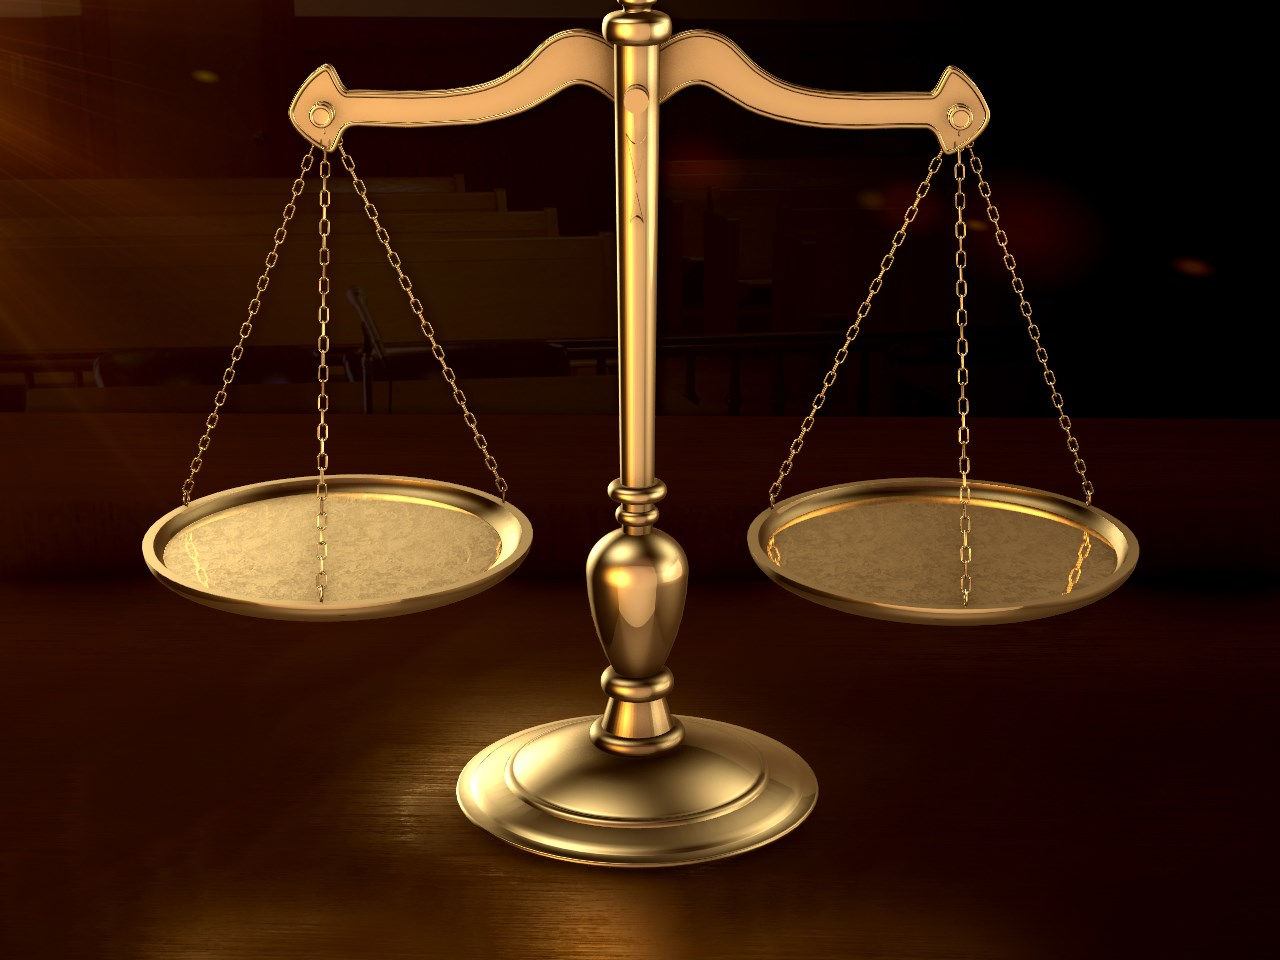 justice-scales-court_1543443951439.jpg